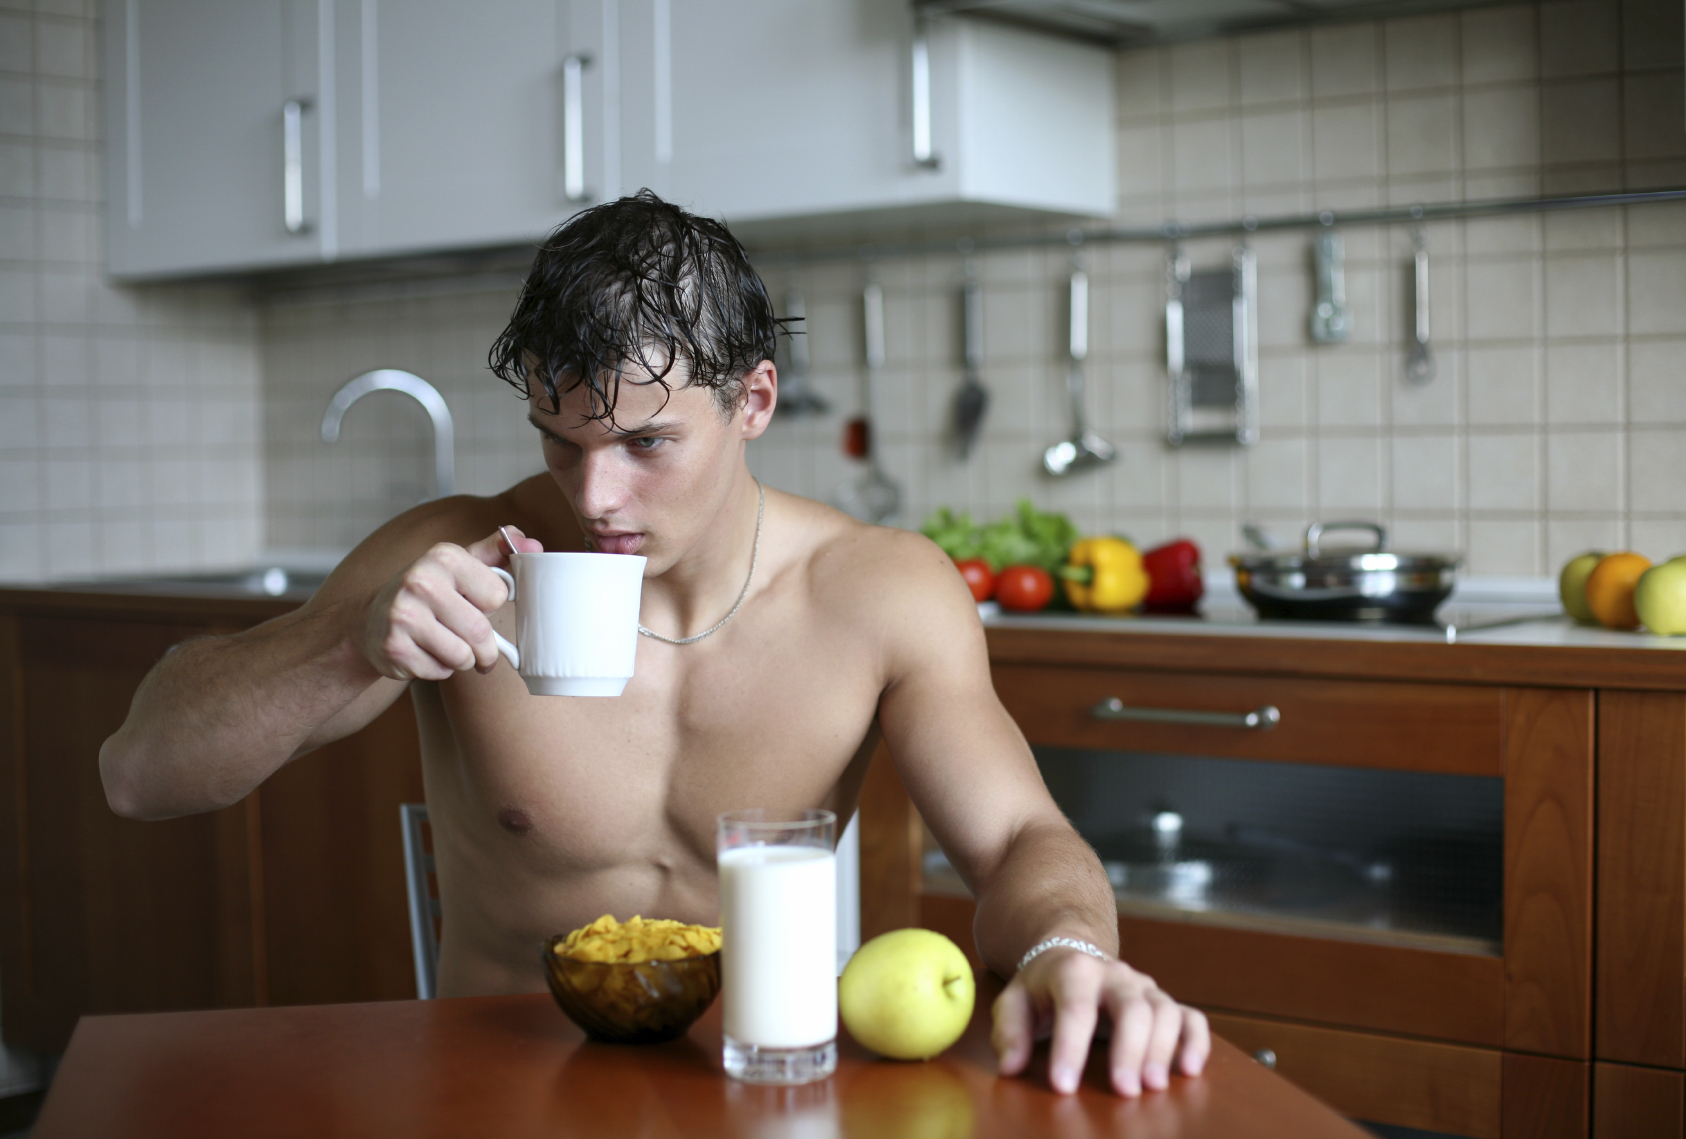 Shirtless male model drinking tea because clearly he lost weight doing so